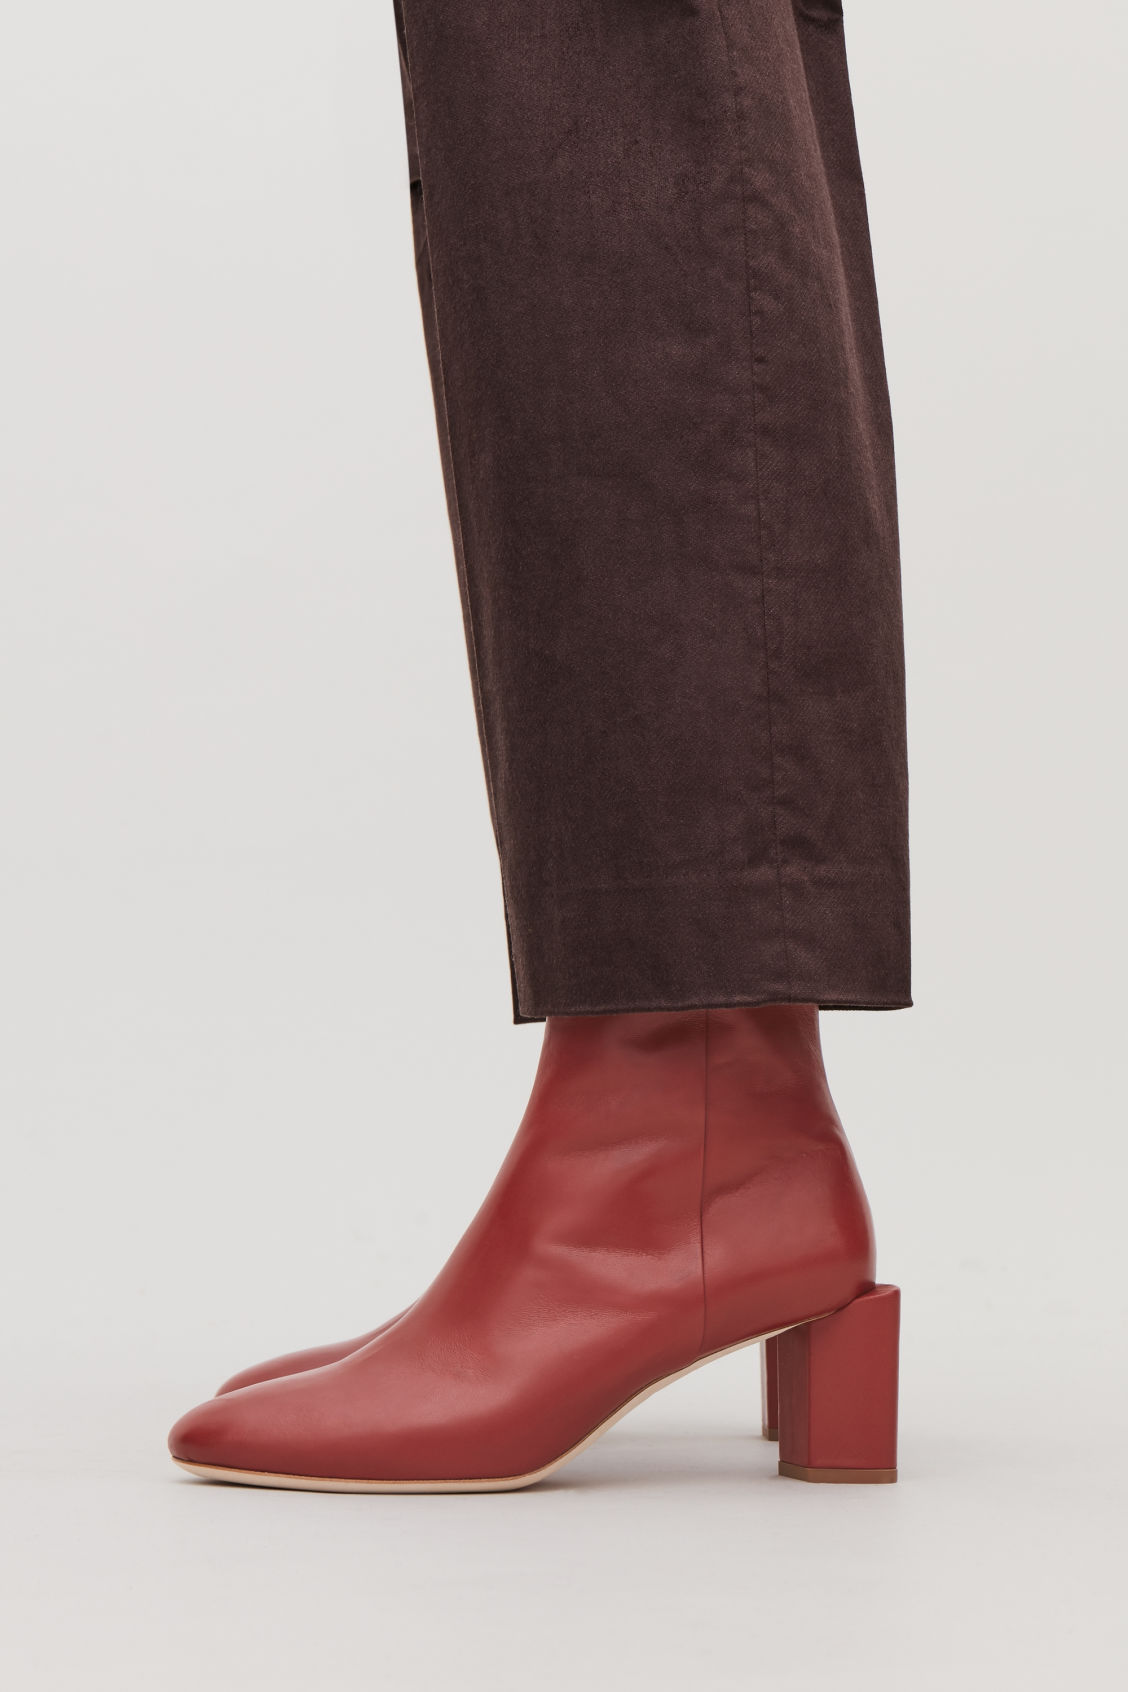 Detailed image of Cos sculptural leather ankle boots in red